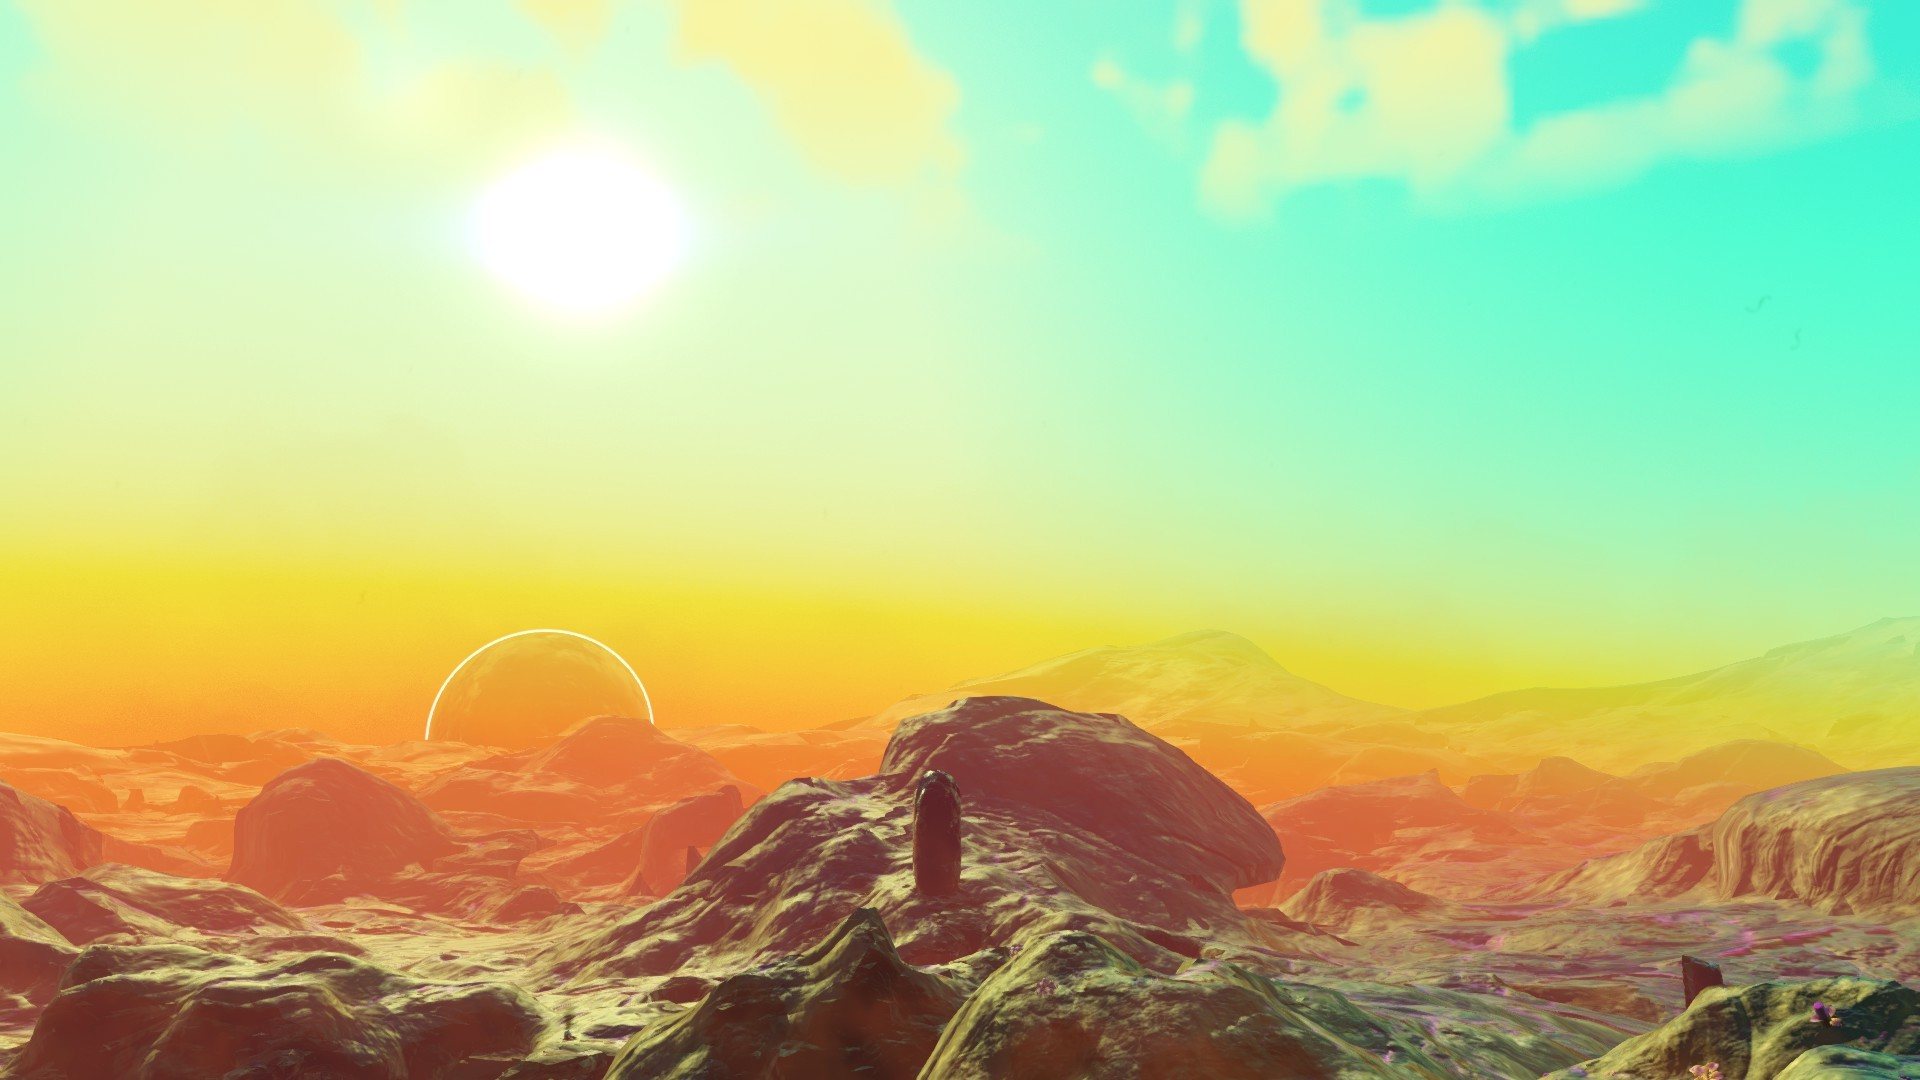 No Man S Sky Background Download Free Cool Backgrounds For